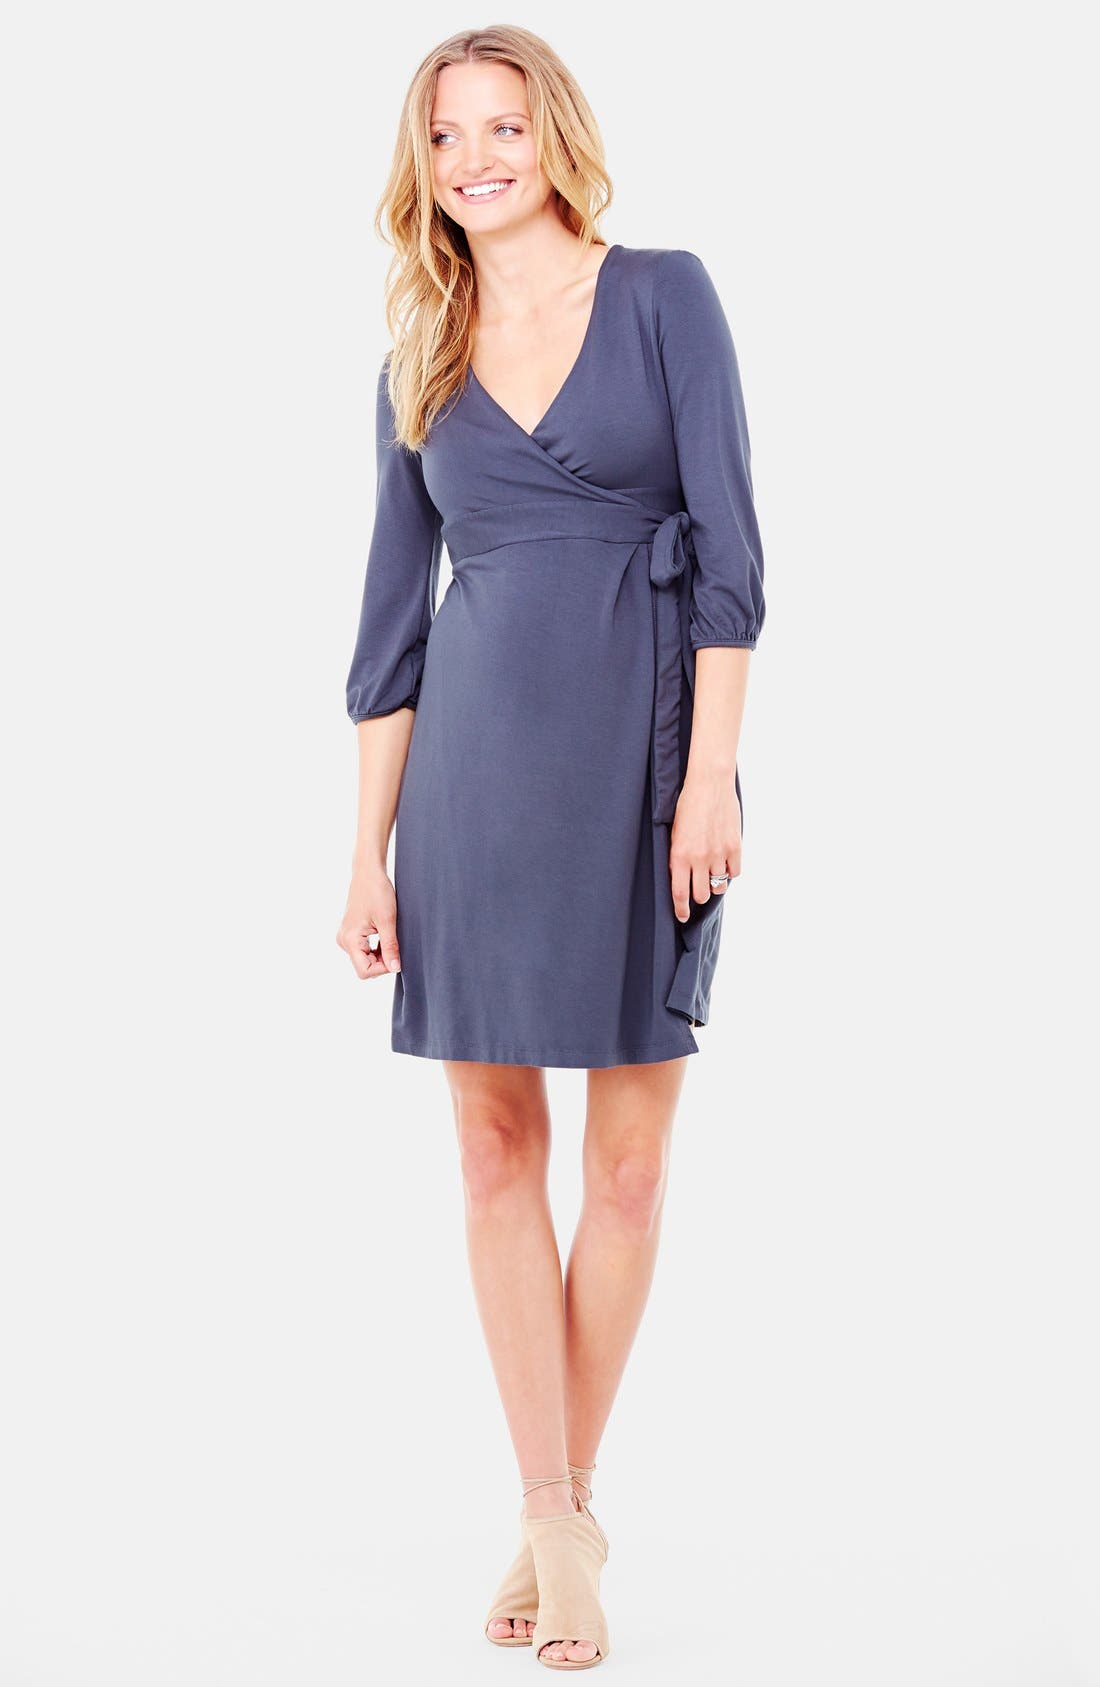 Alternate Image 1 Selected - Ingrid & Isabel® Nursing Friendly Maternity Wrap Dress